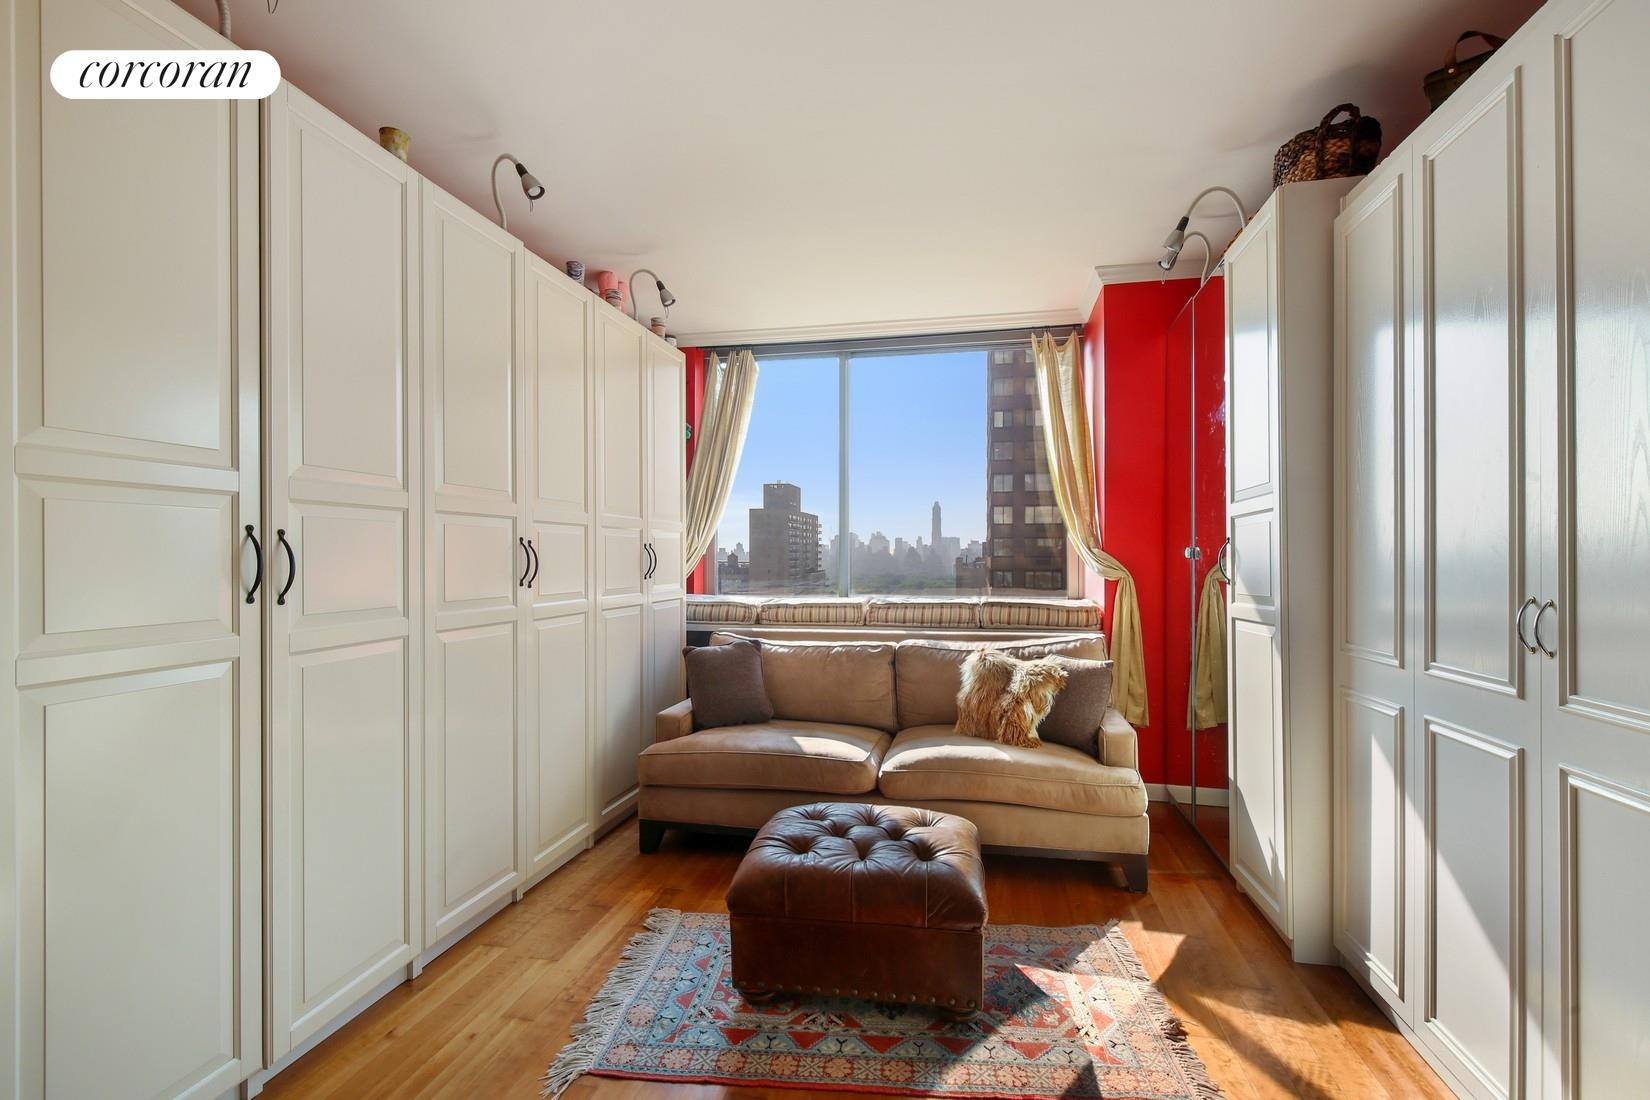 Apartment for sale at 111 West 67th Street, Apt 22K